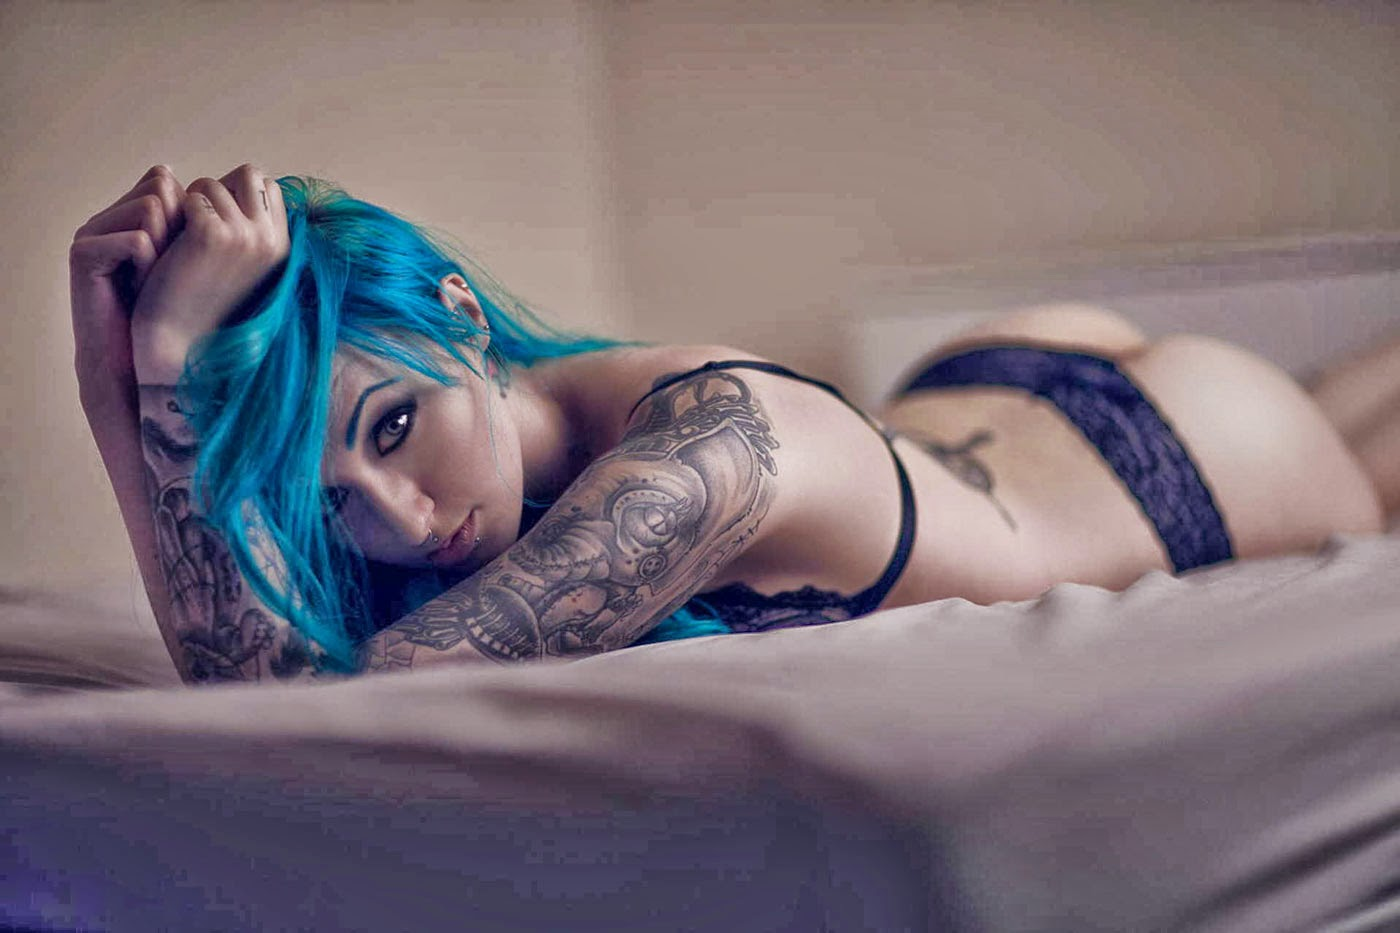 Will know, Tattoo sexy naked girls pity, that